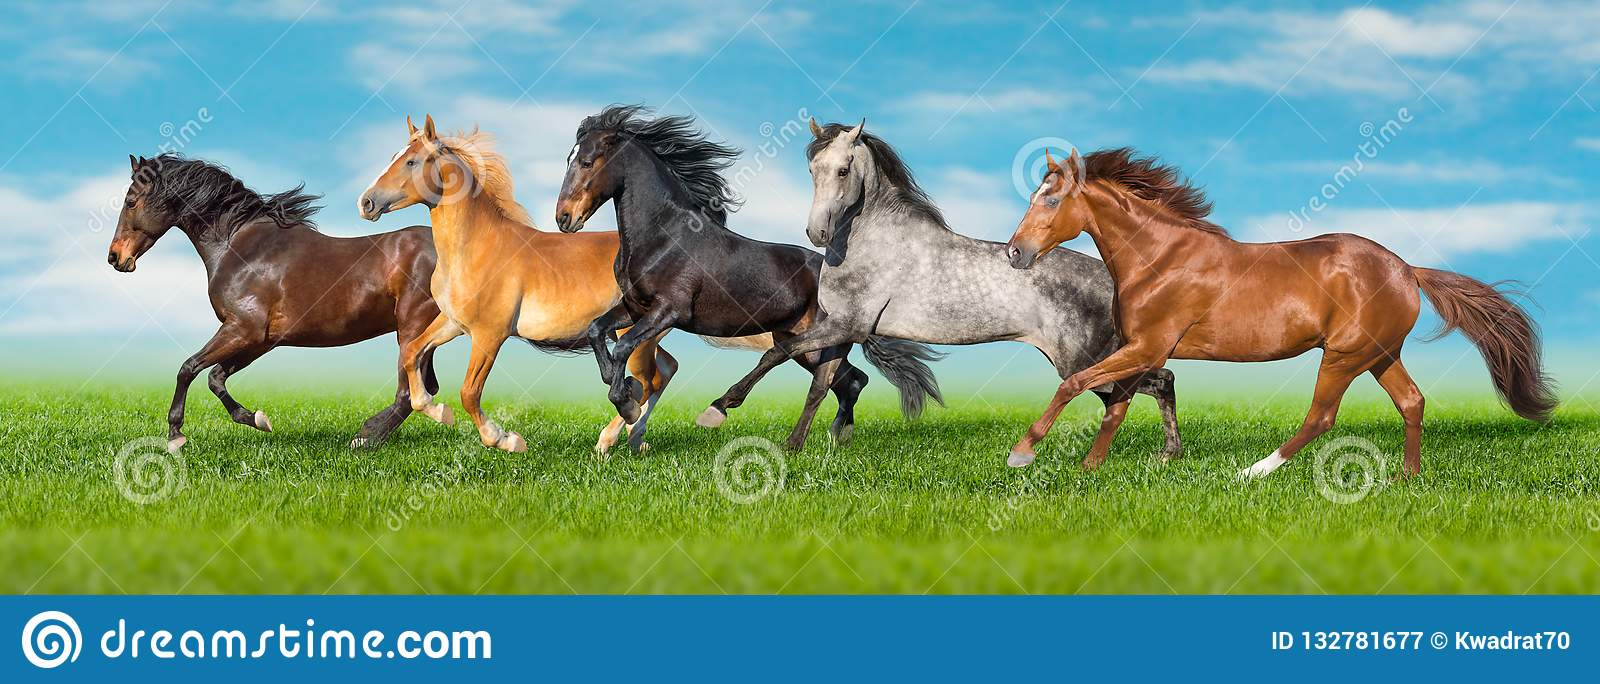 Horses run fast on field